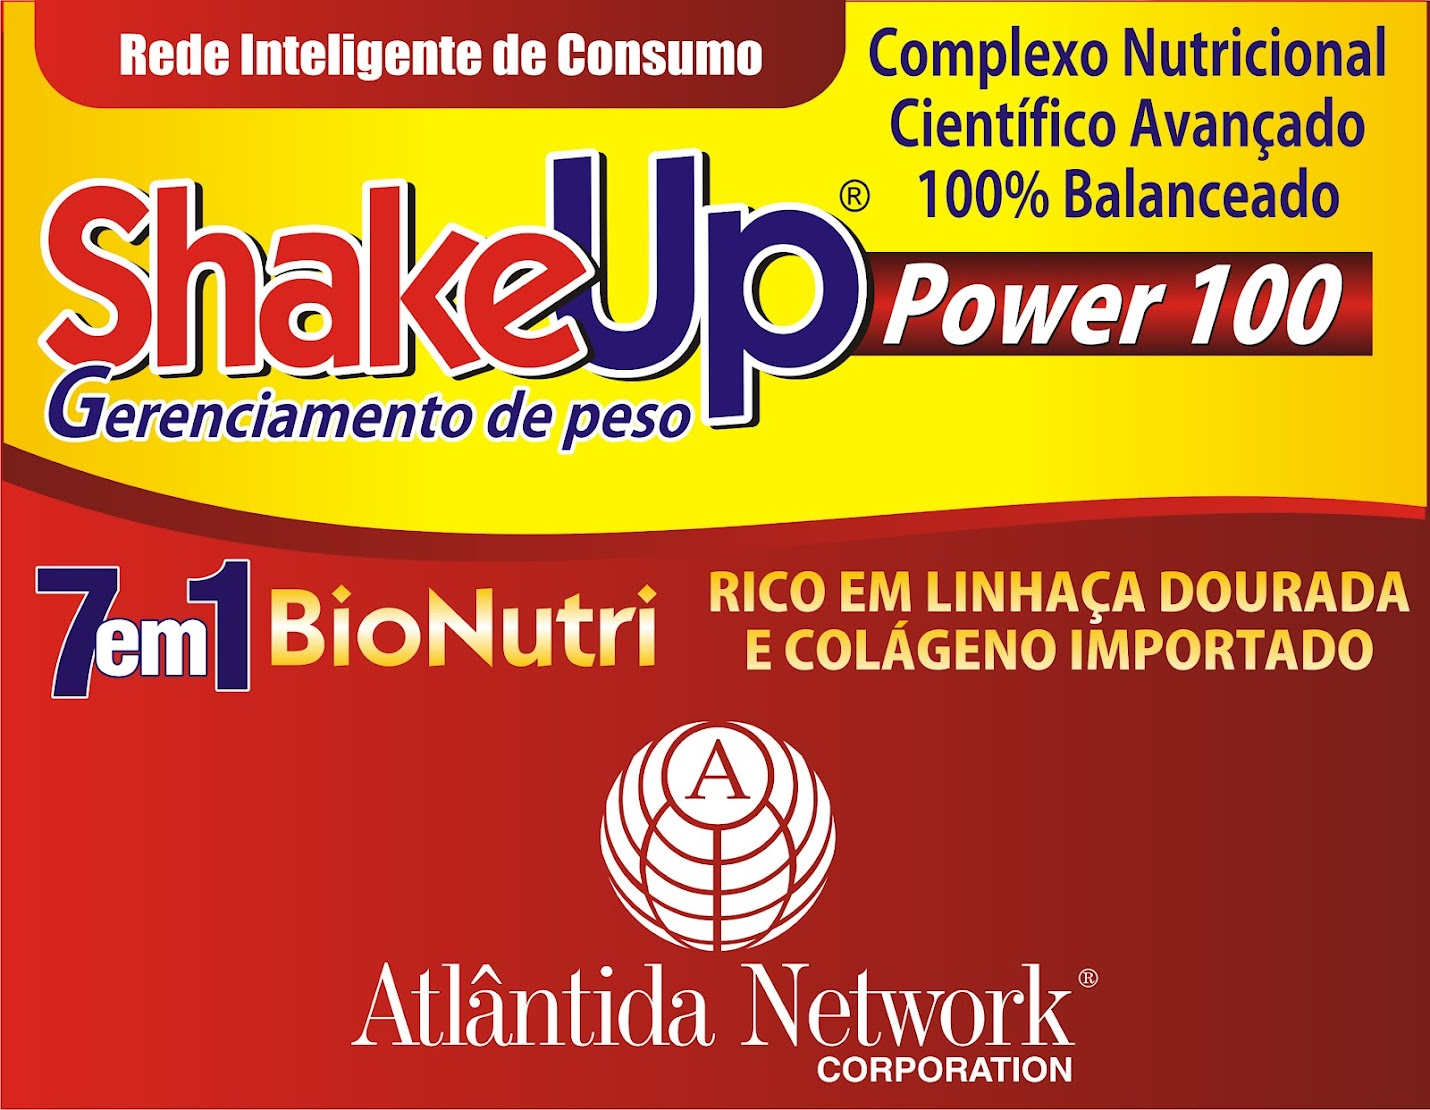 SHAKE-UP Power 100